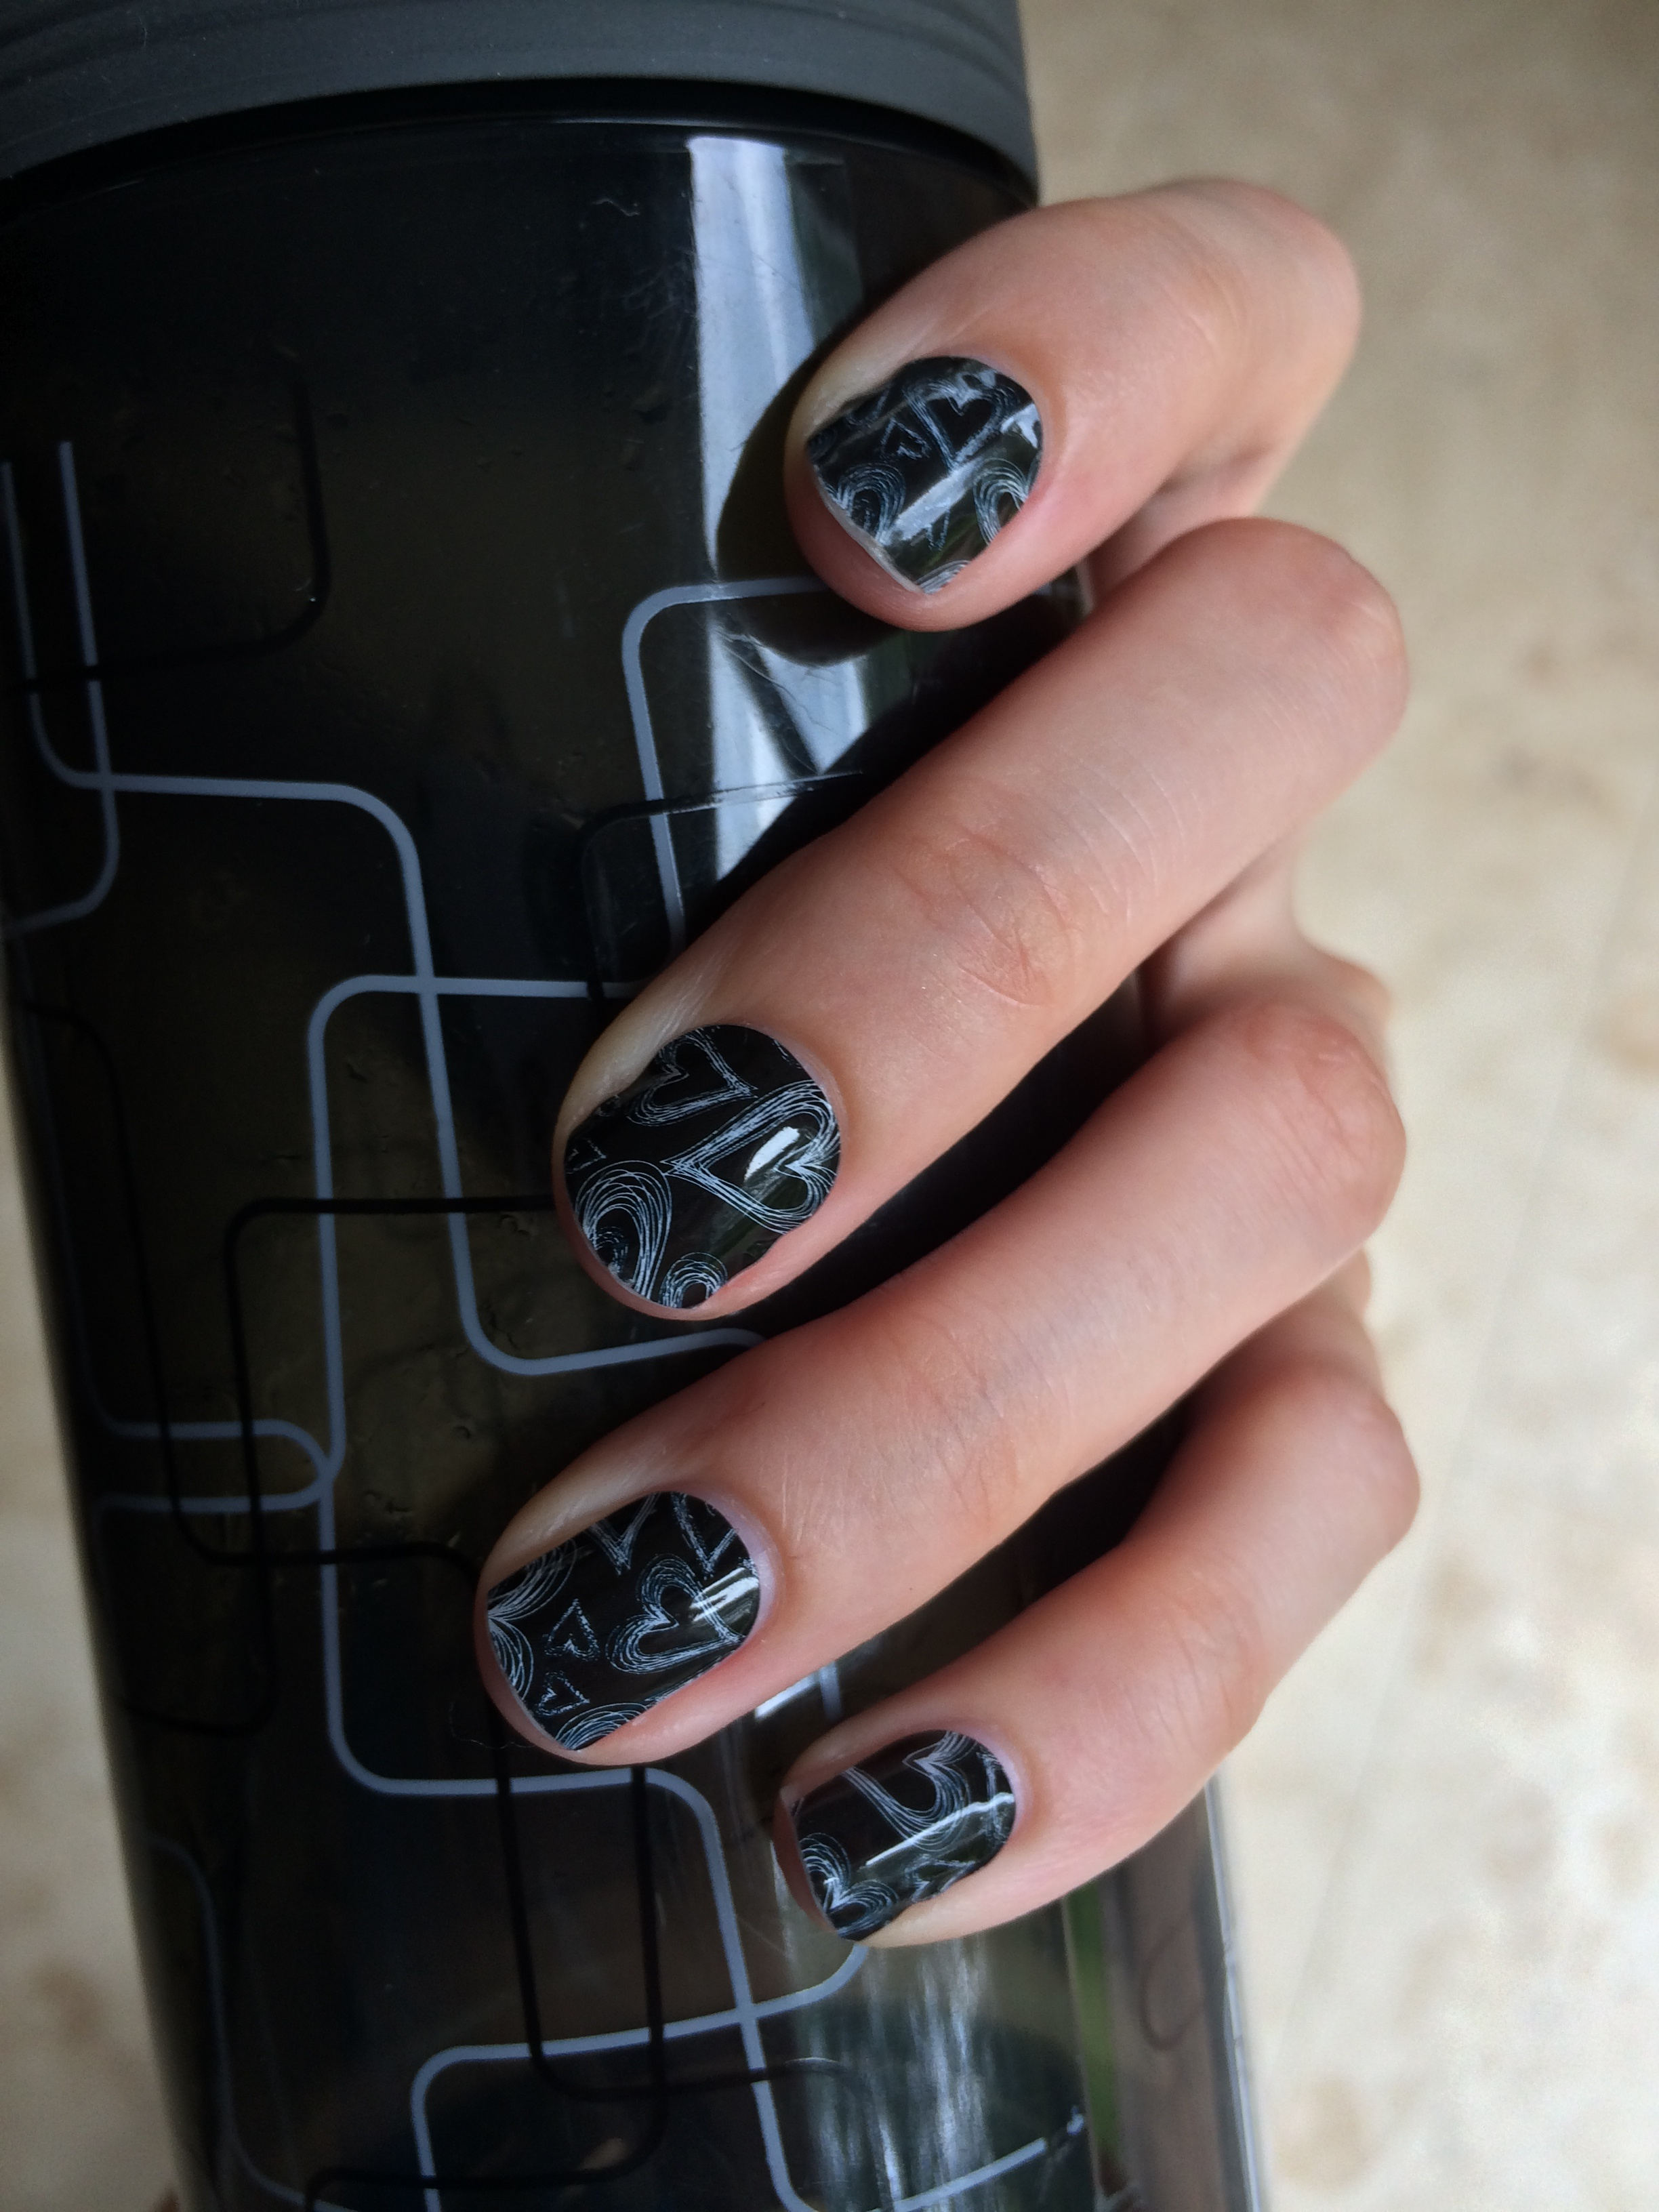 Jamberry Nails: Stylish Looks to Match Your Personal Tastes - Chase ...